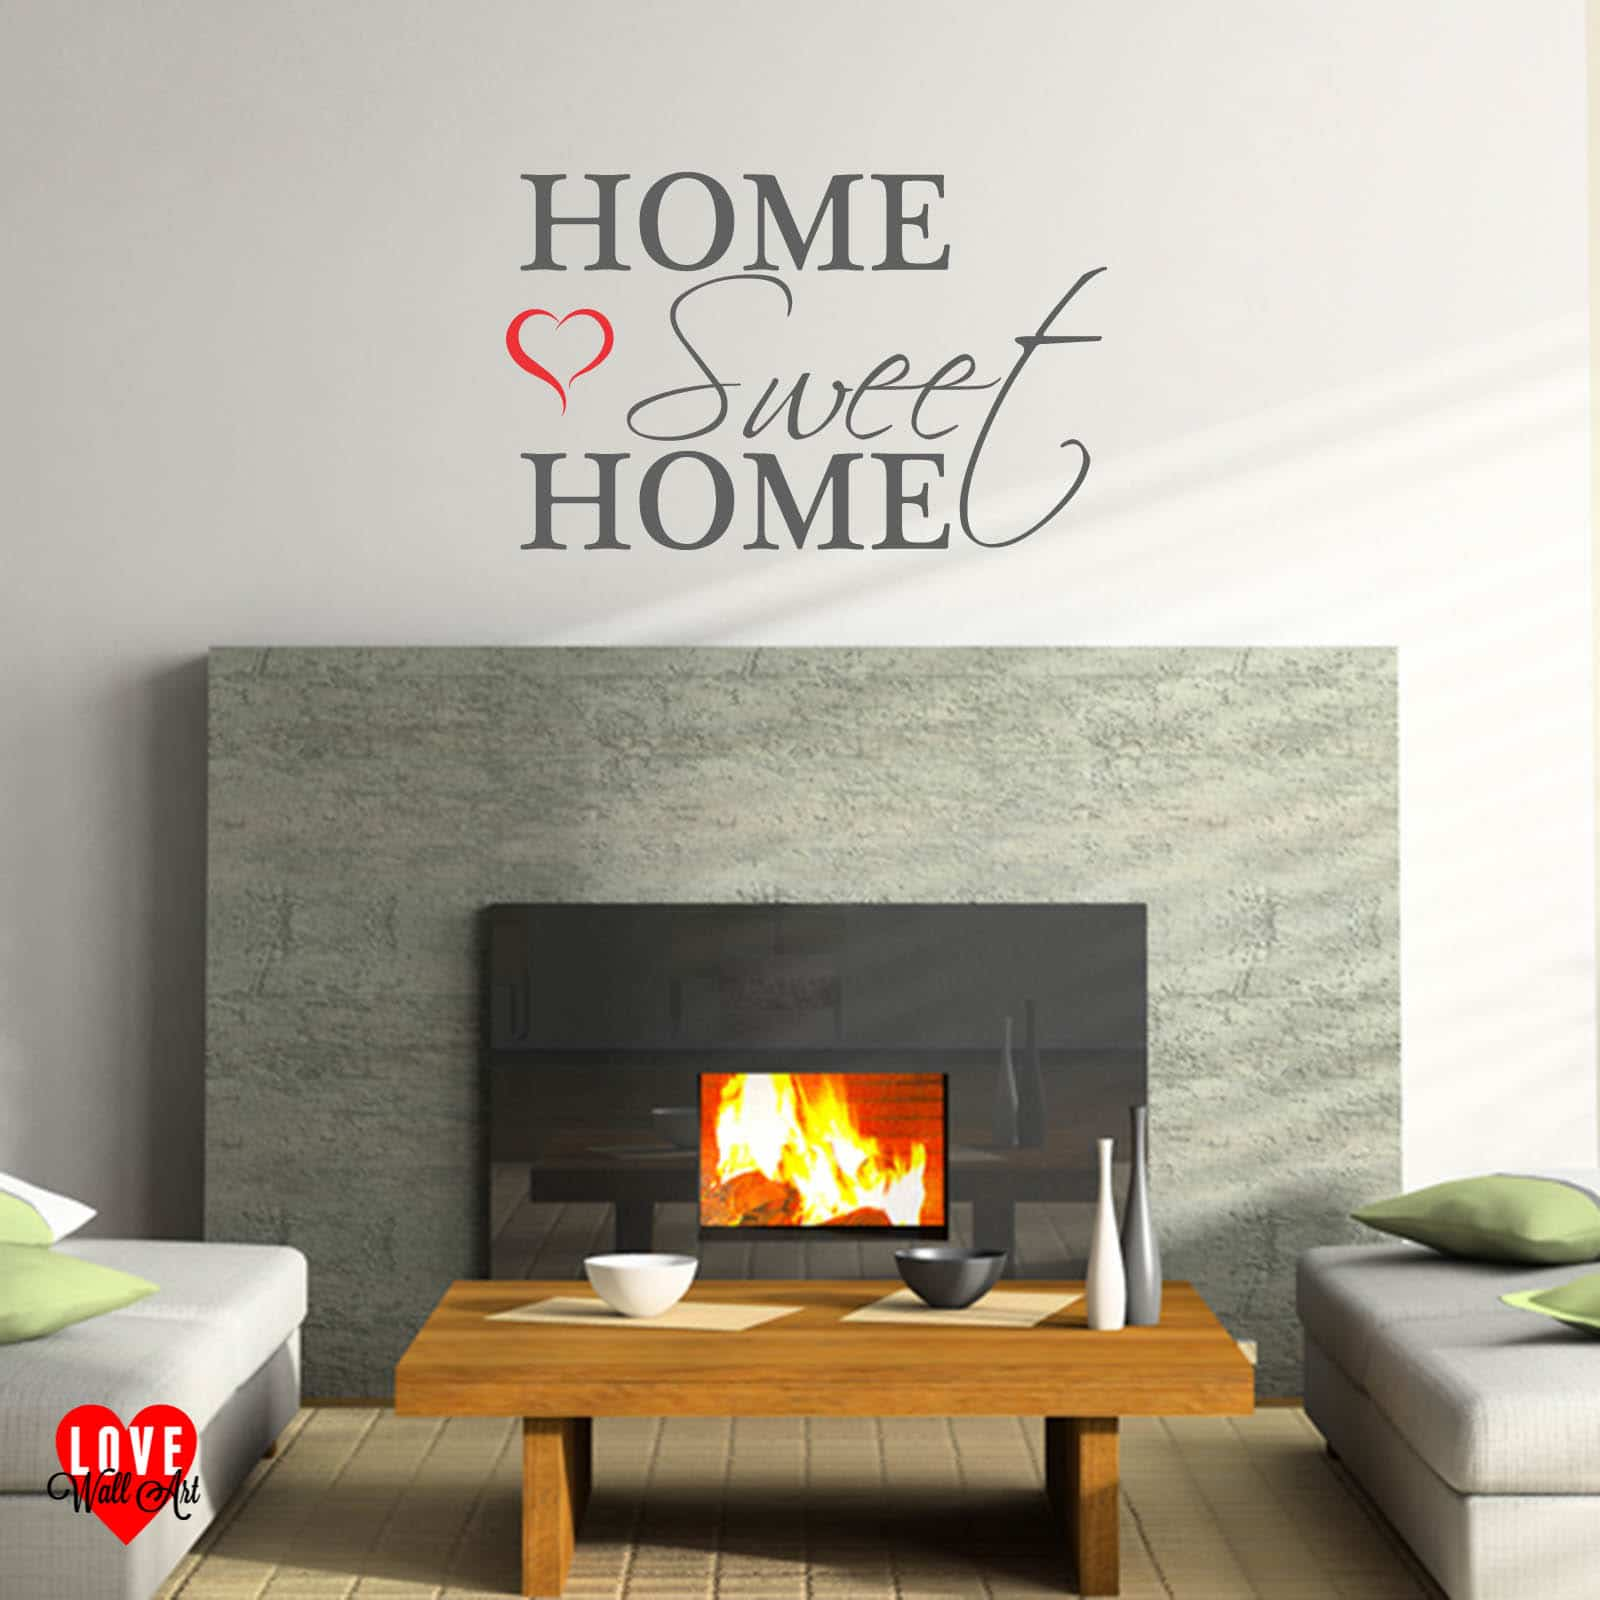 Wall stickers home sweet home - Home Sweet Home Wall Art Quote Wall Sticker